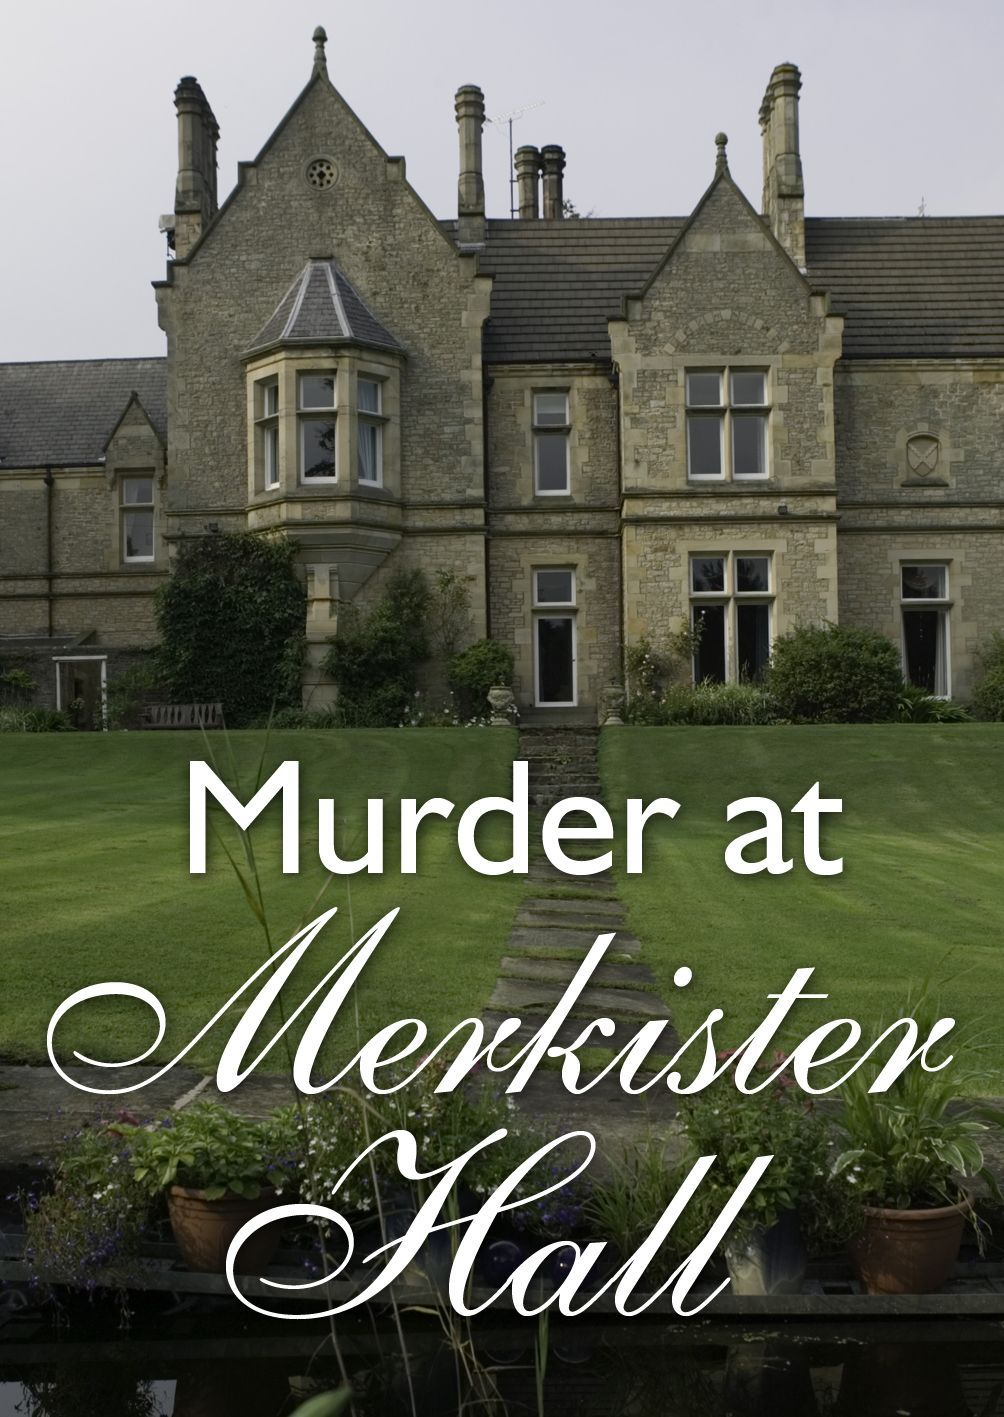 Murder at Merkister Hall - Red Herring Games